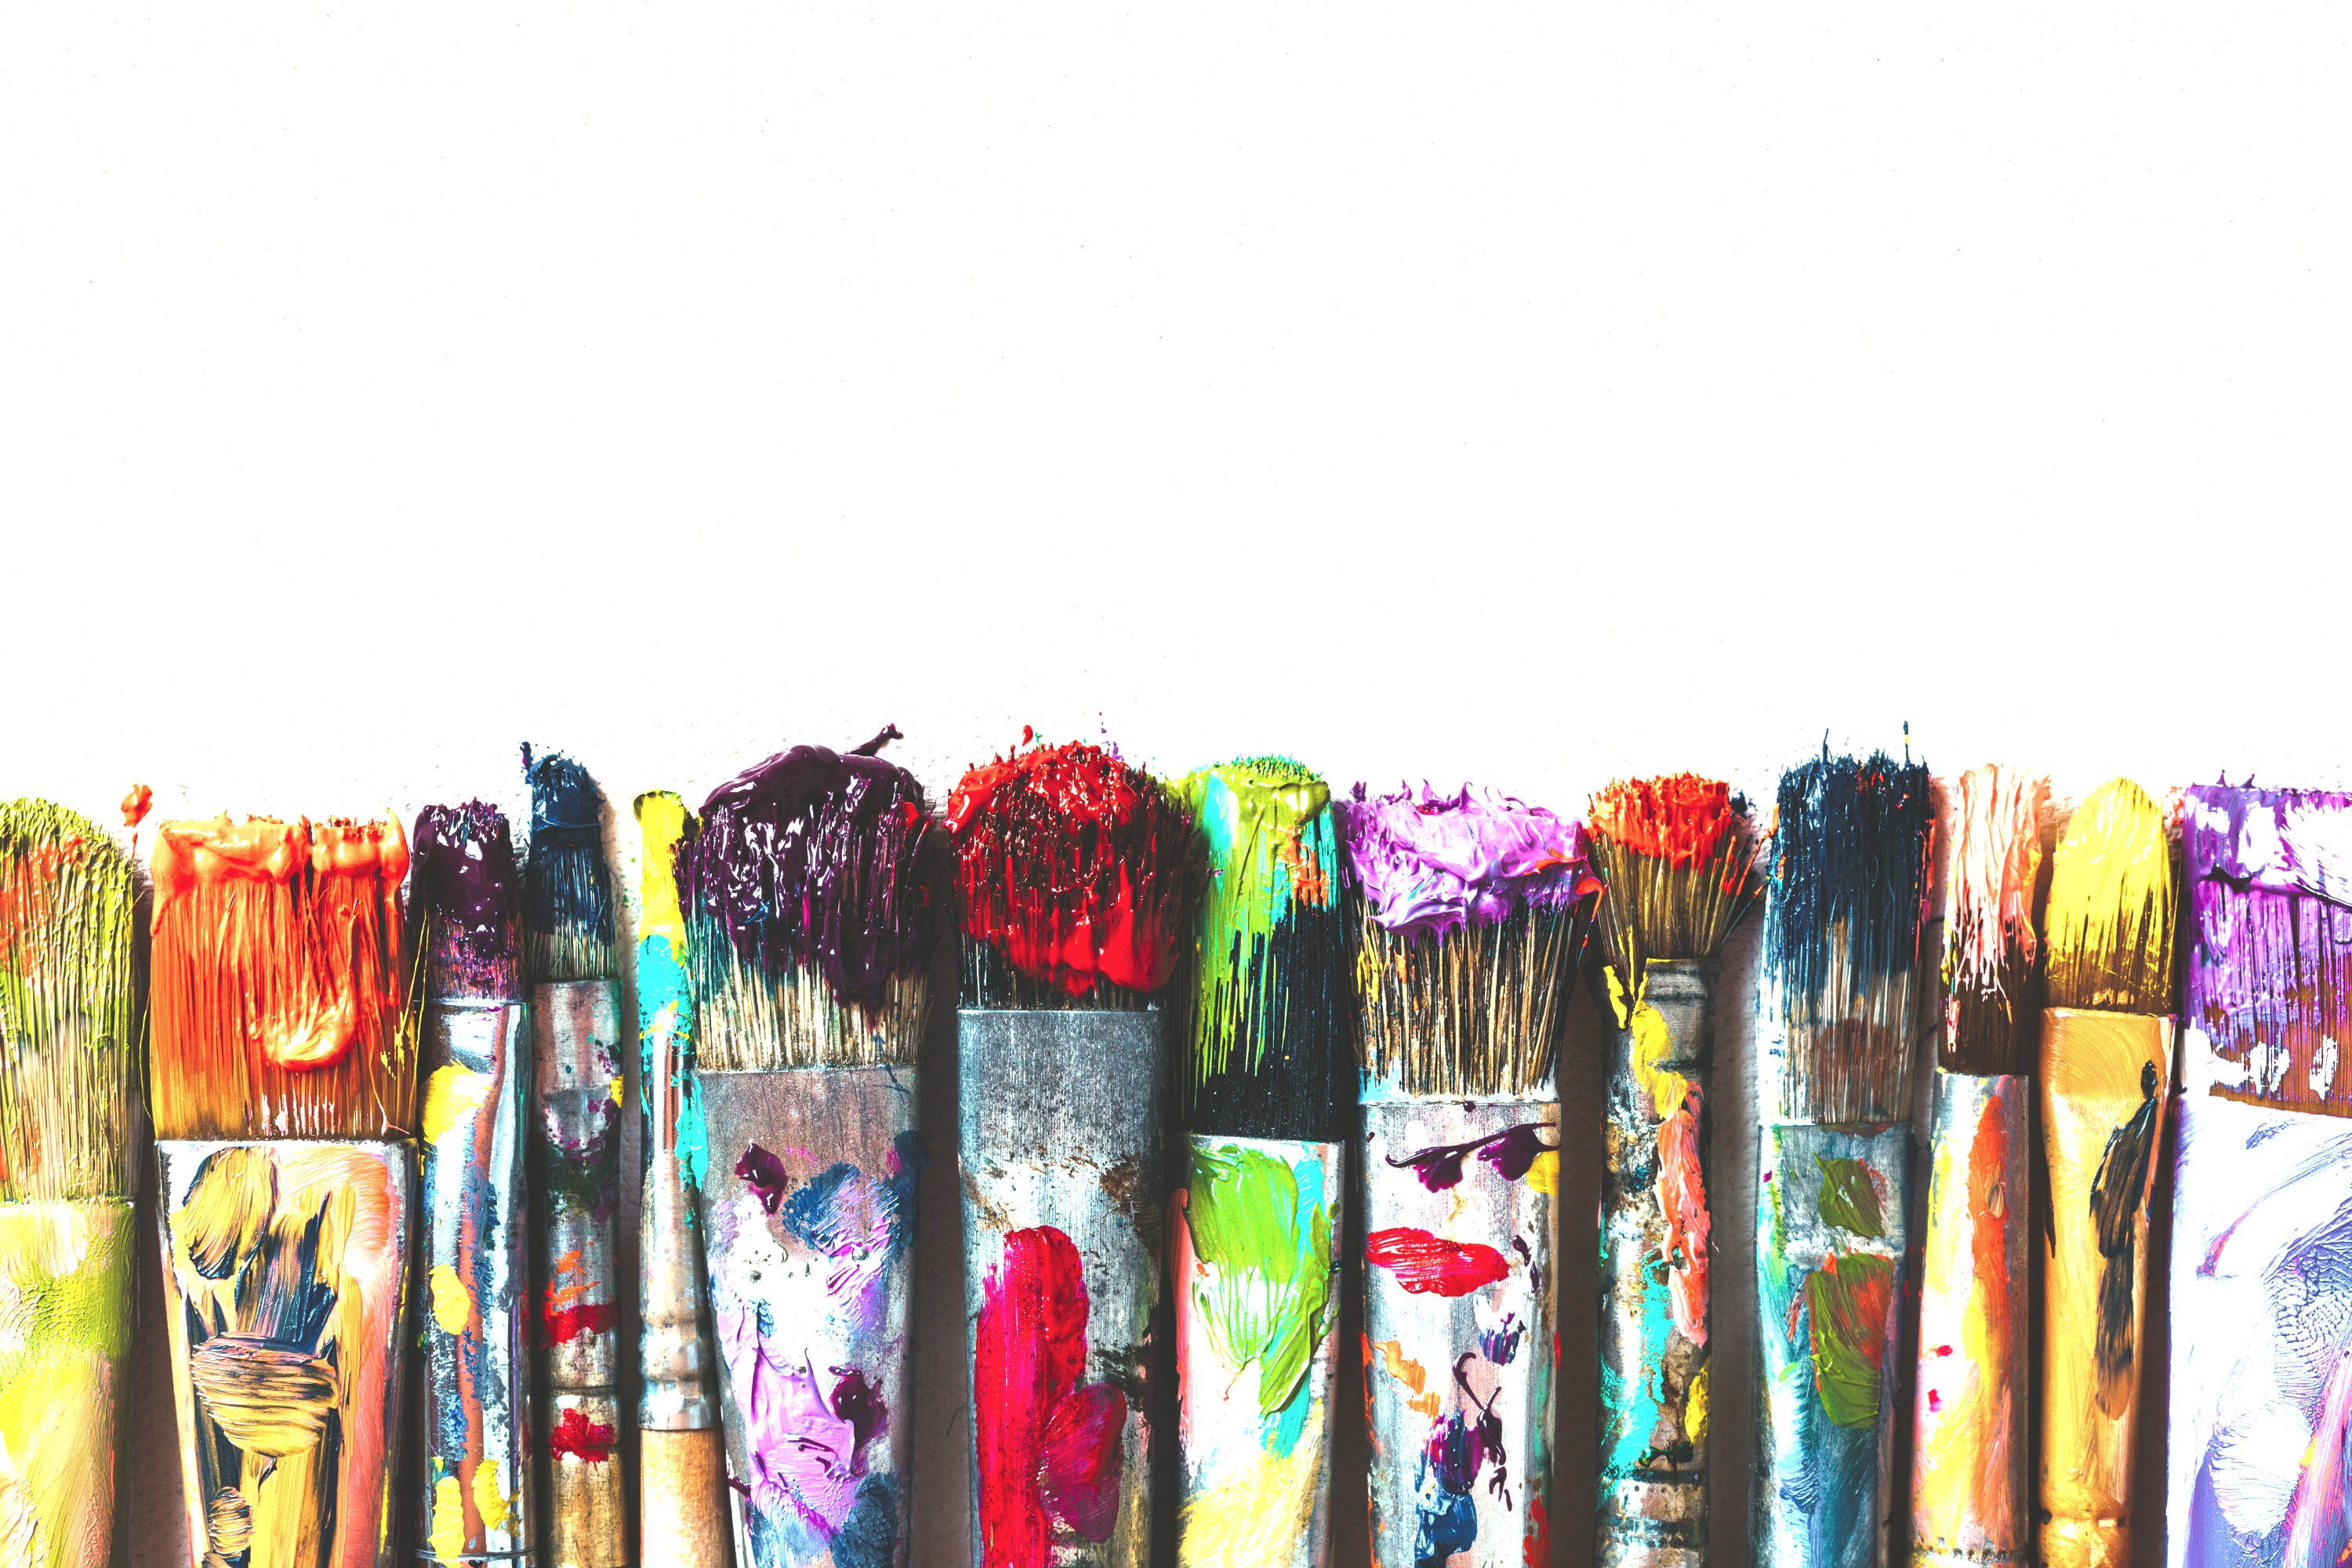 Row of artist paintbrushes closeup on ar